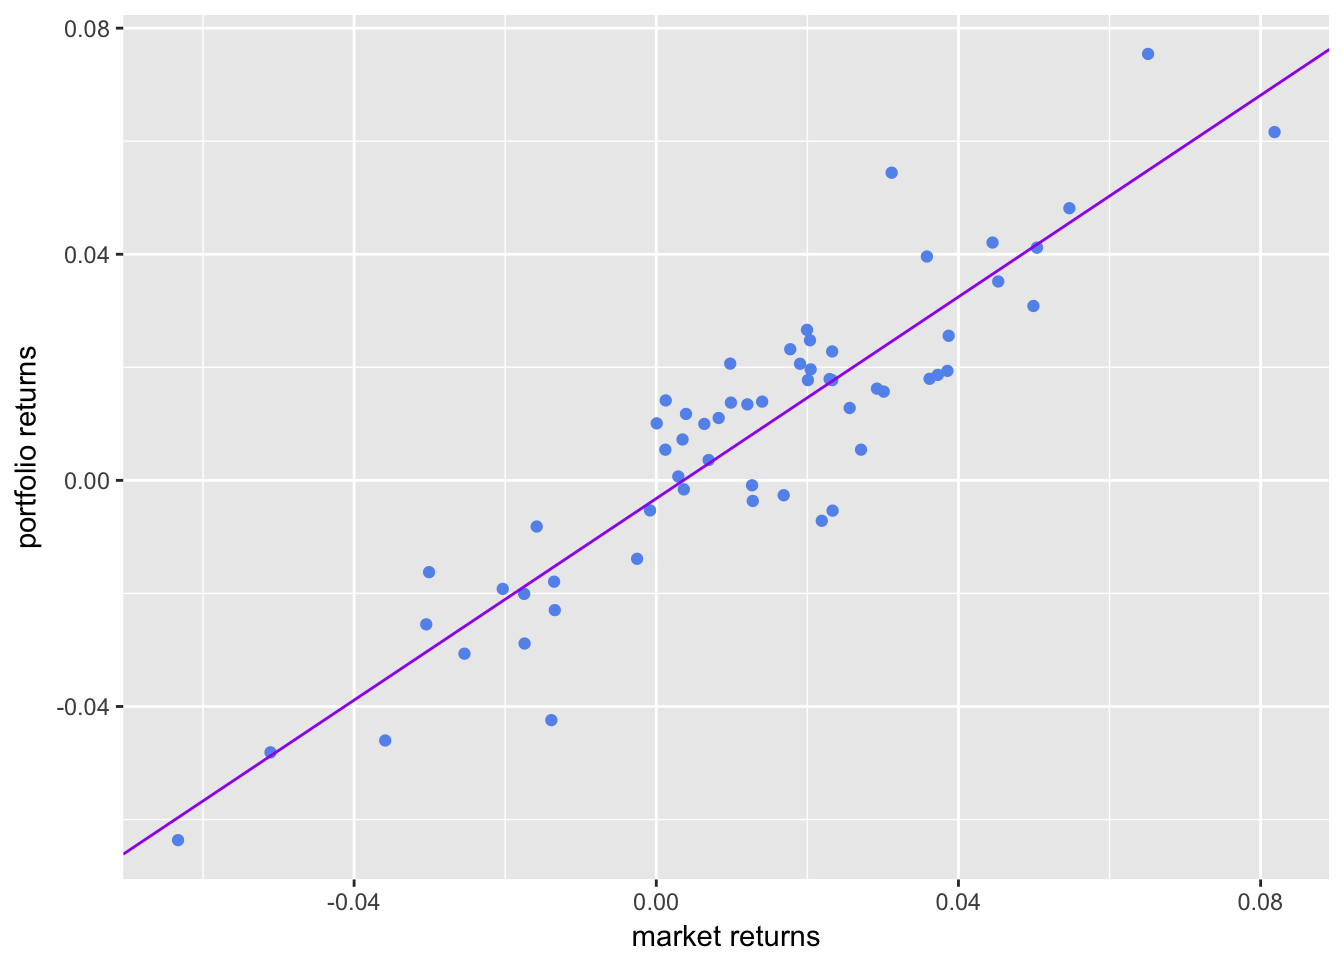 Scatter with Regression Line from Beta Estimate